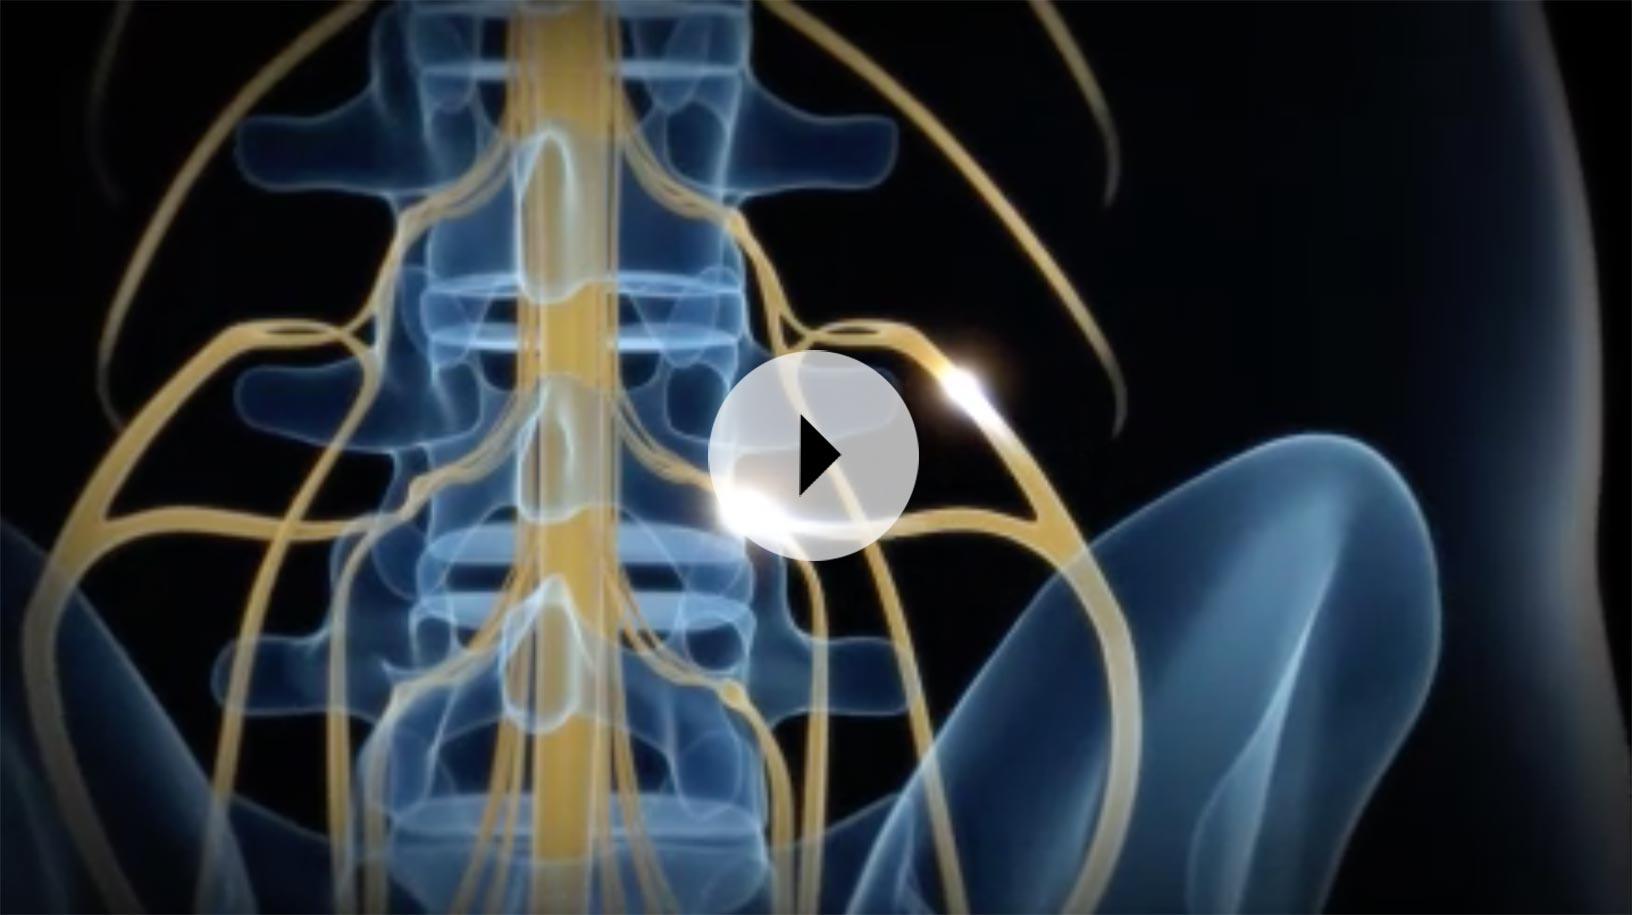 Overview Of Dorsal Root Ganglion (Drg) Stimulation